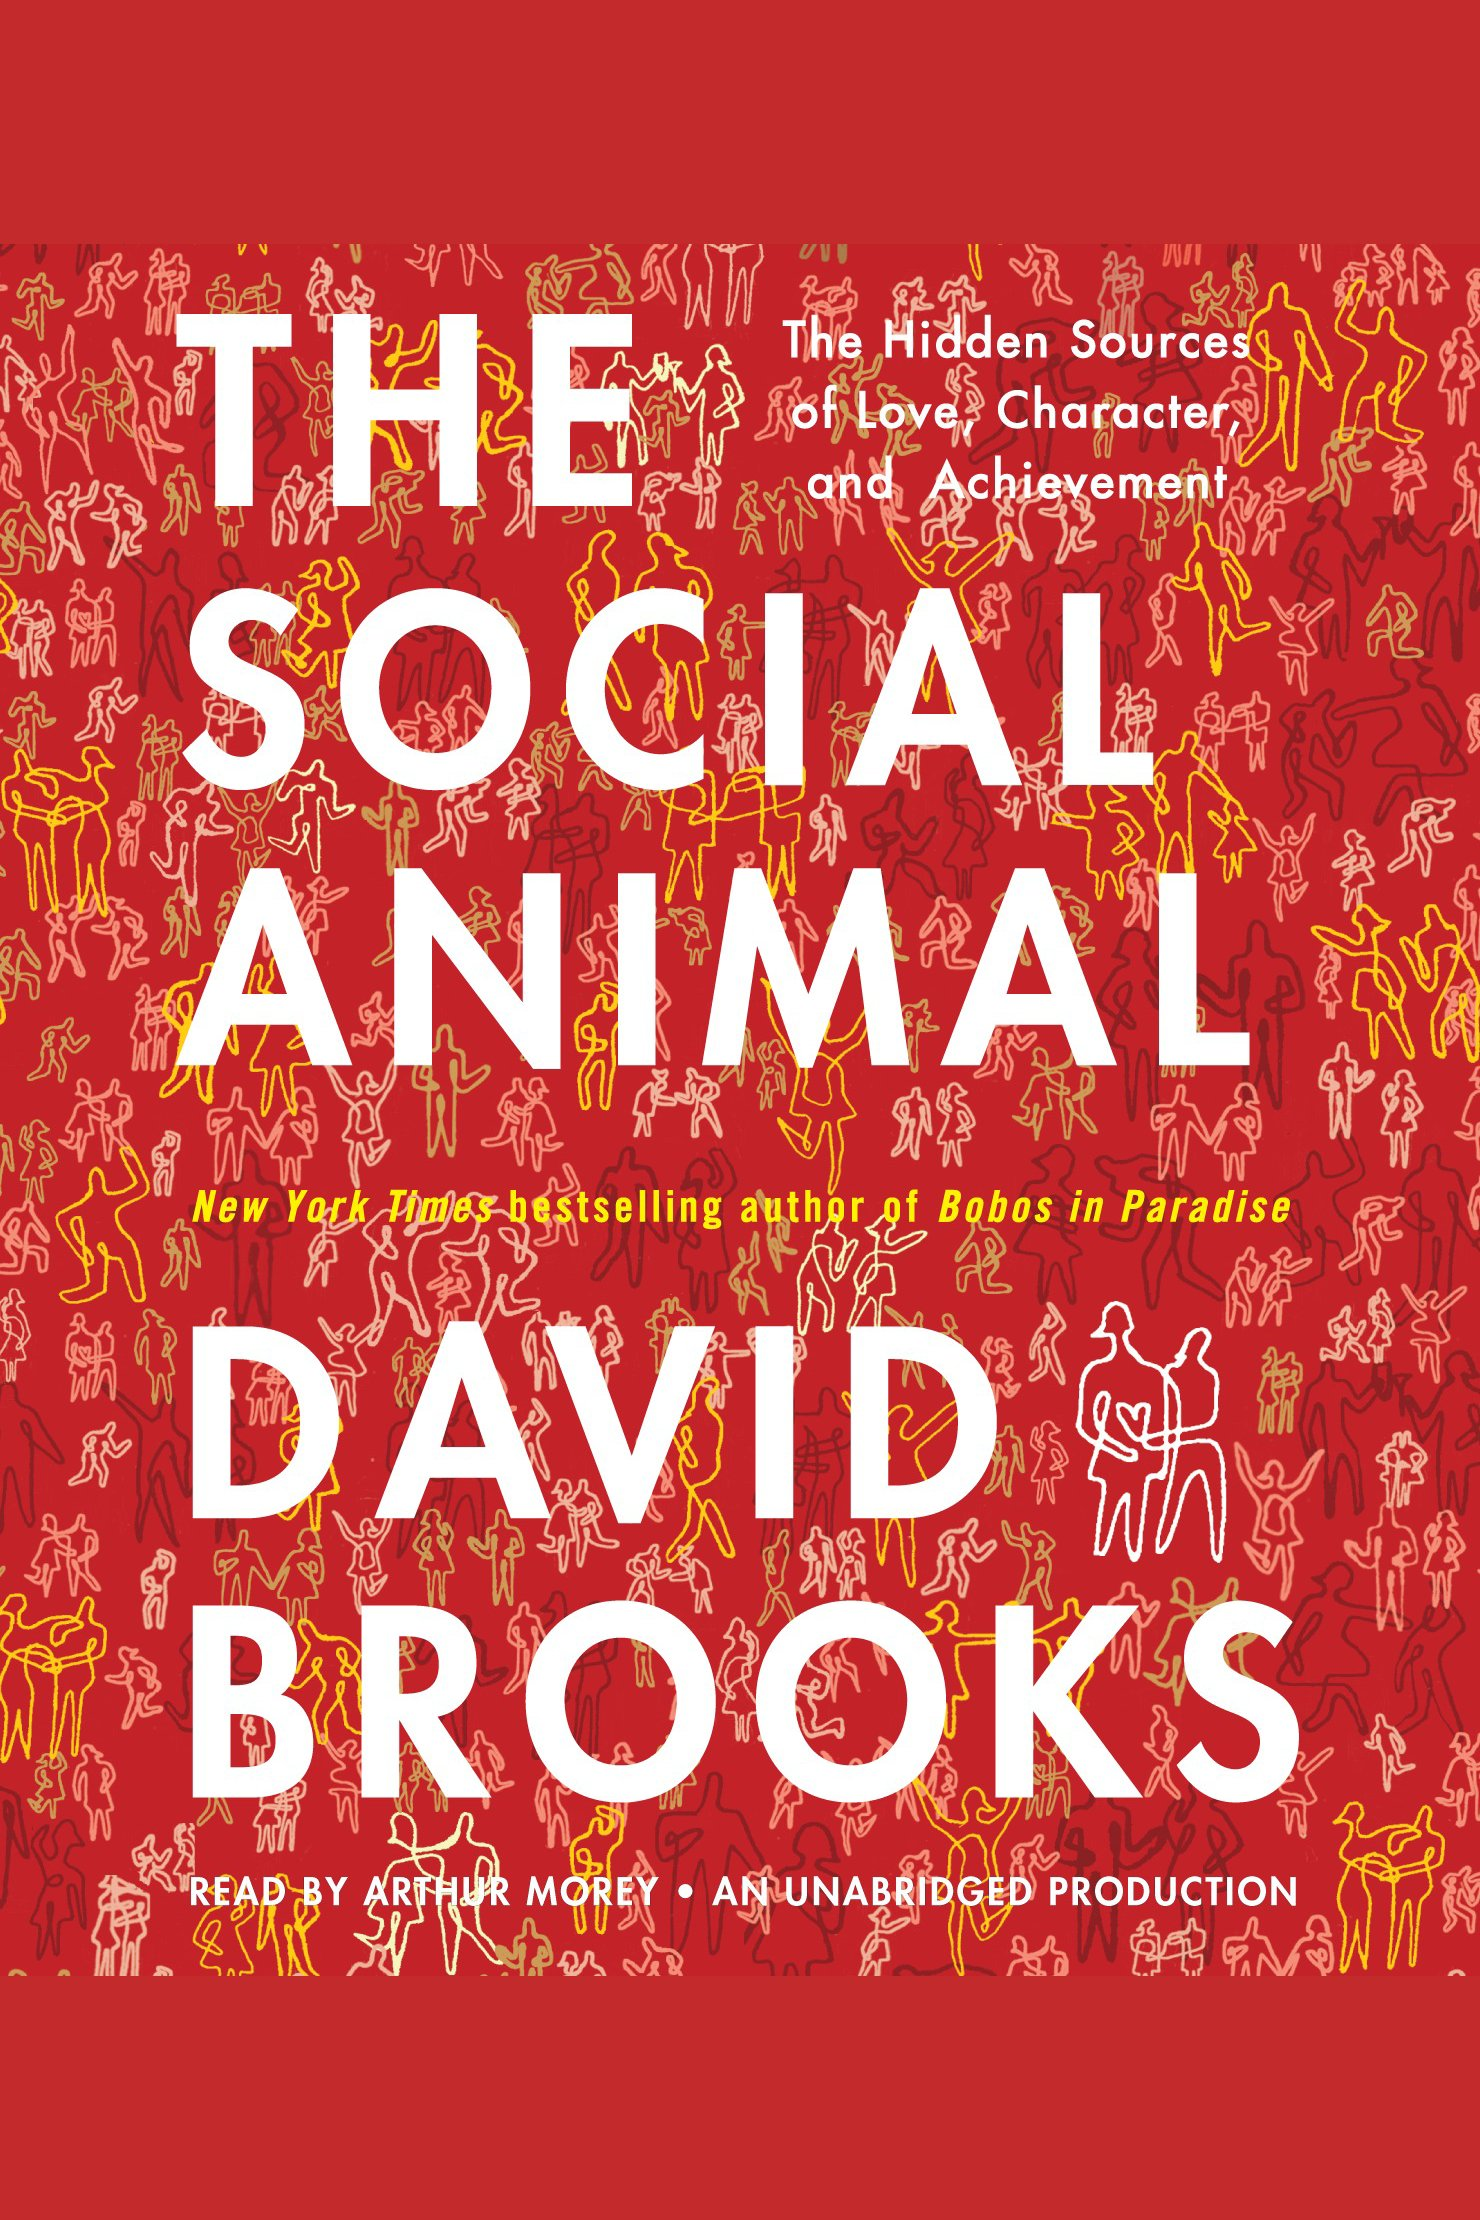 The social animal the hidden sources of love, character, and achievement cover image